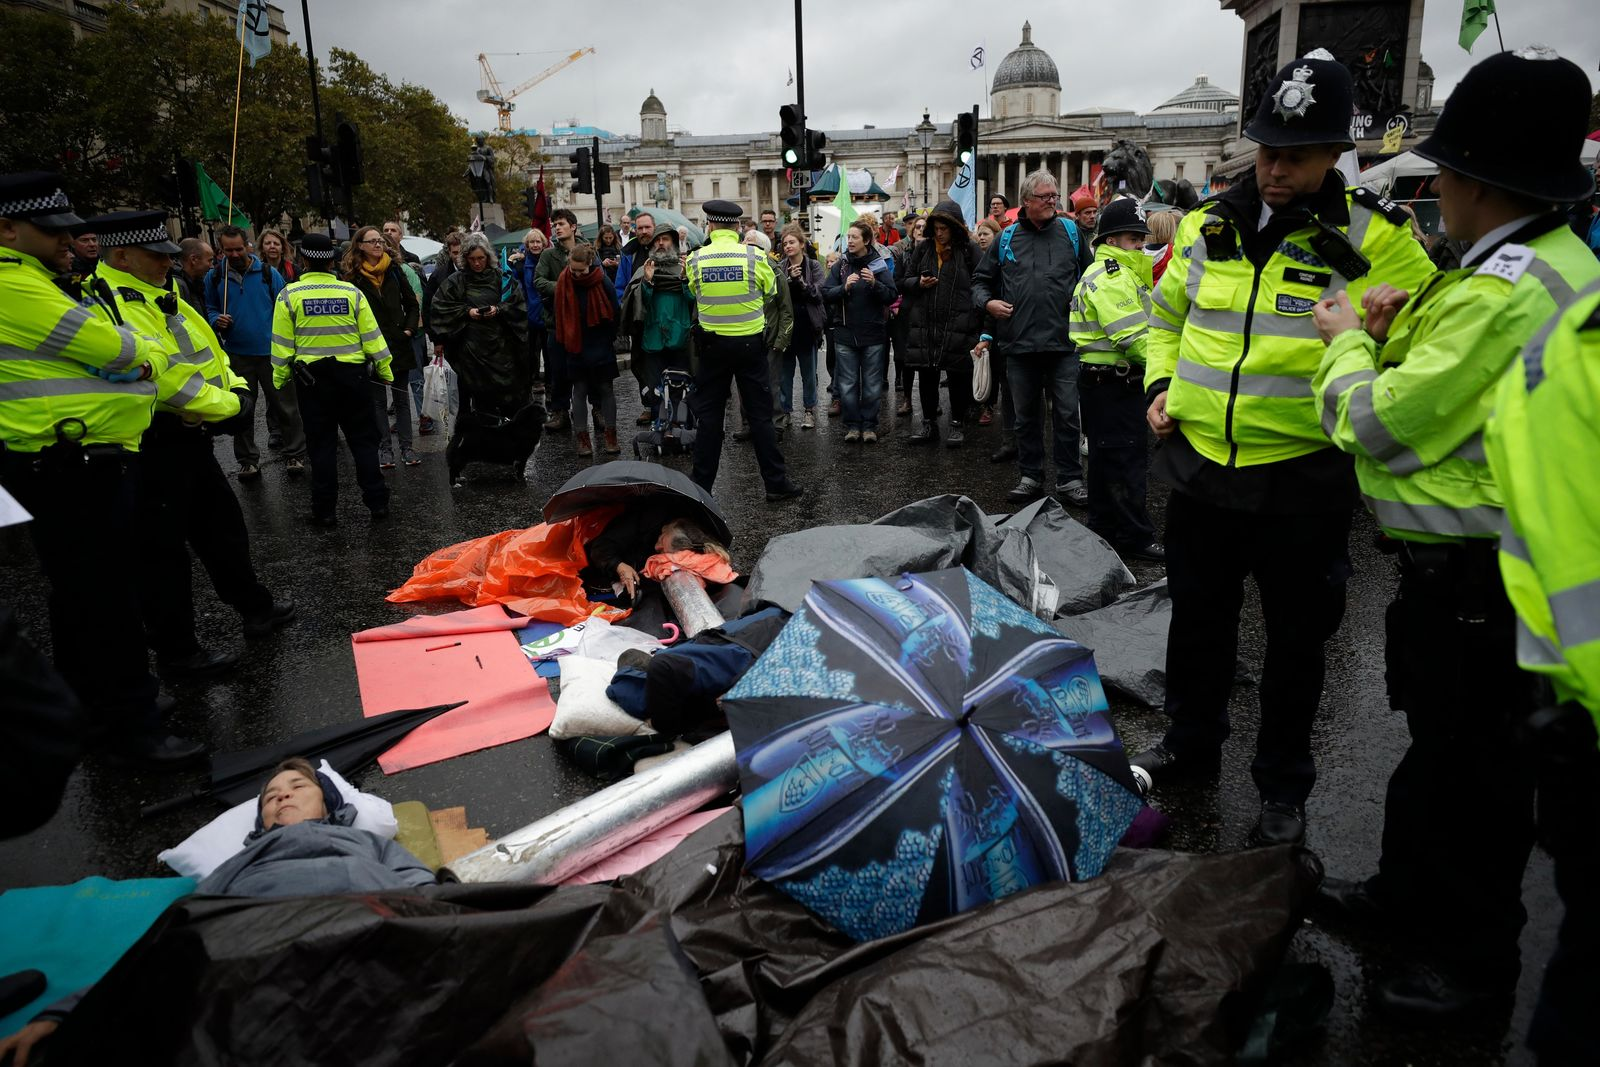 Extinction Rebellion climate change protesters lie with their arms locked together blocking a road at the bottom of Trafalgar Square in London, Friday, Oct. 11, 2019. Some hundreds of climate change activists are in London during a fifth day of protests by the Extinction Rebellion movement to demand more urgent actions to counter global warming. (AP Photo/Matt Dunham)